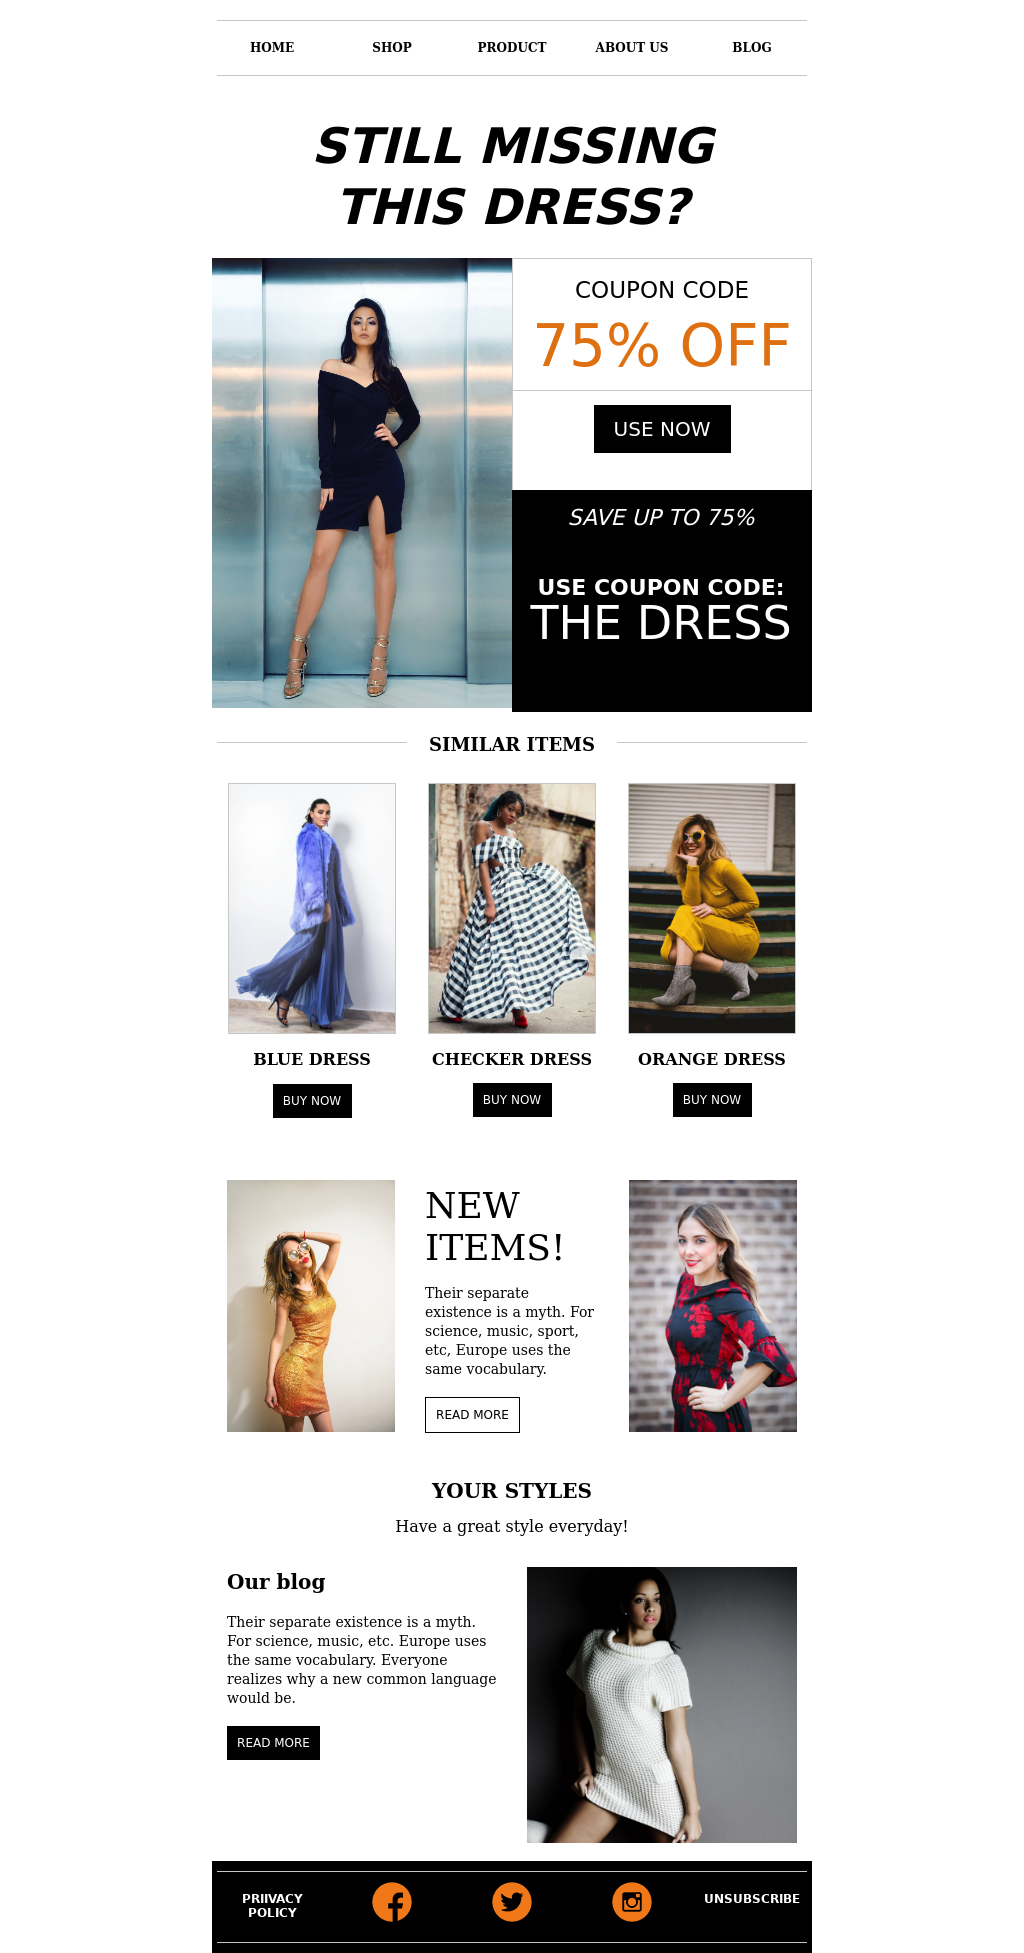 Fashion E-commerce Cart Abandonment Email Template